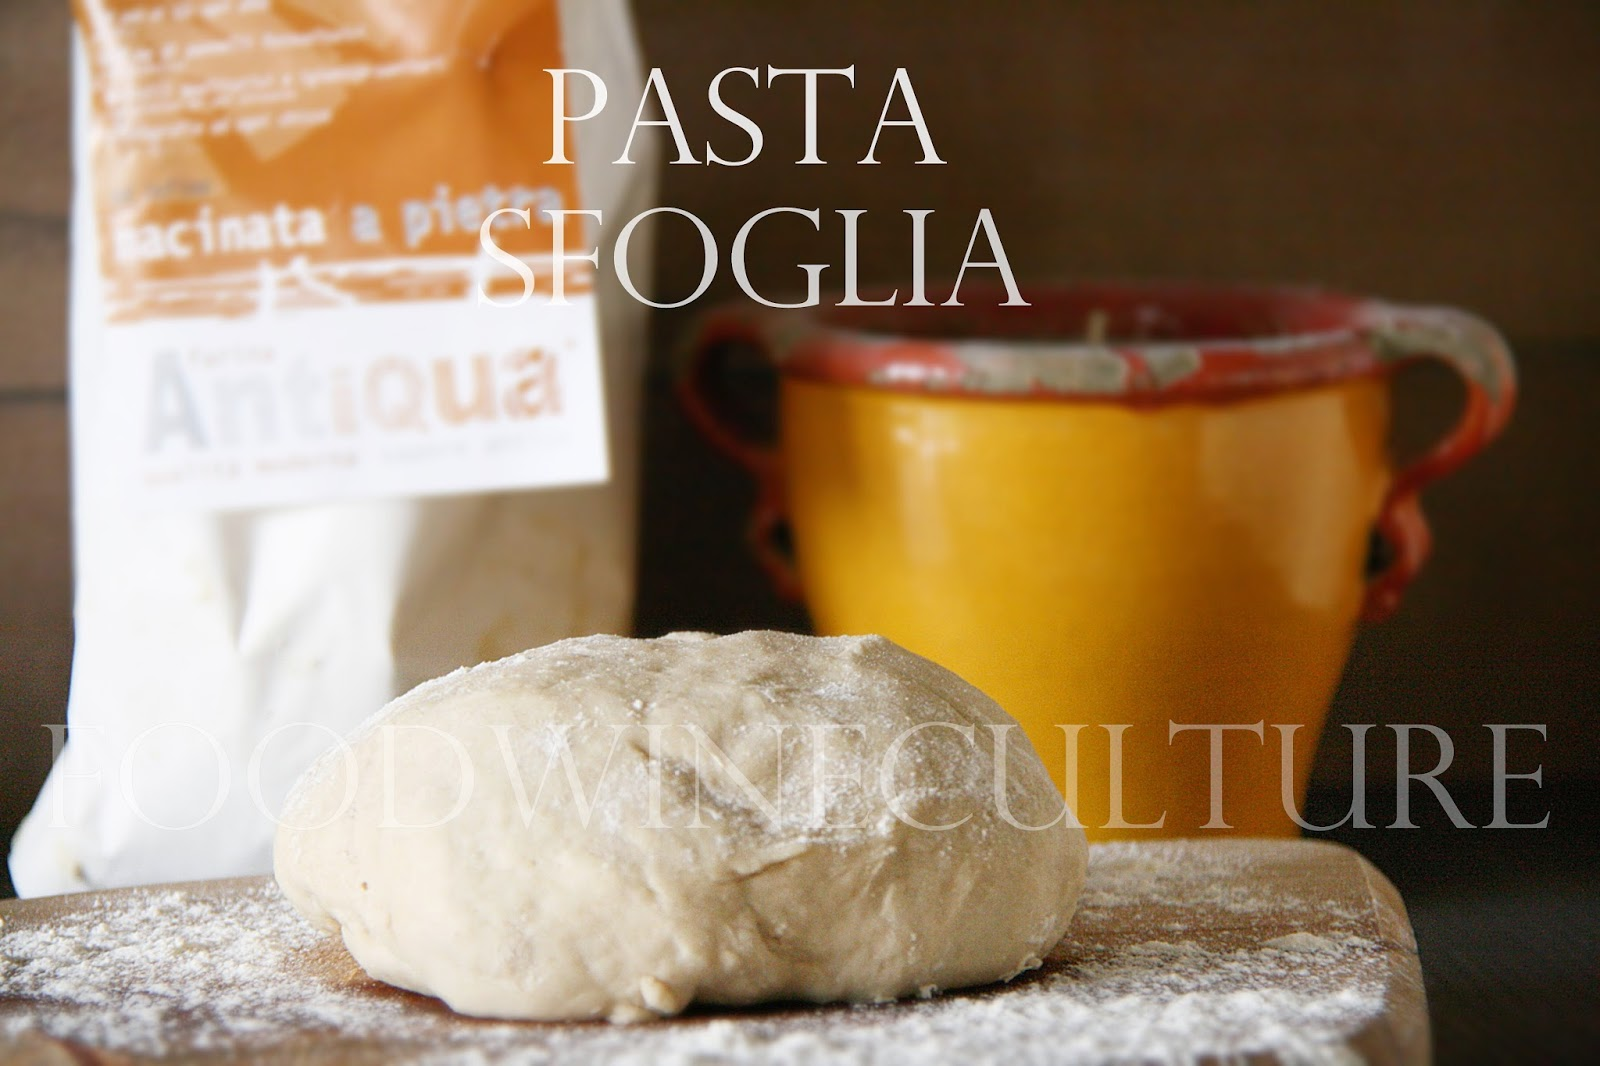 La Pasta Sfoglia: Ingredienti e Tecniche di lavorazione  The Puff Pastry: Ingredients and Processing Techniques